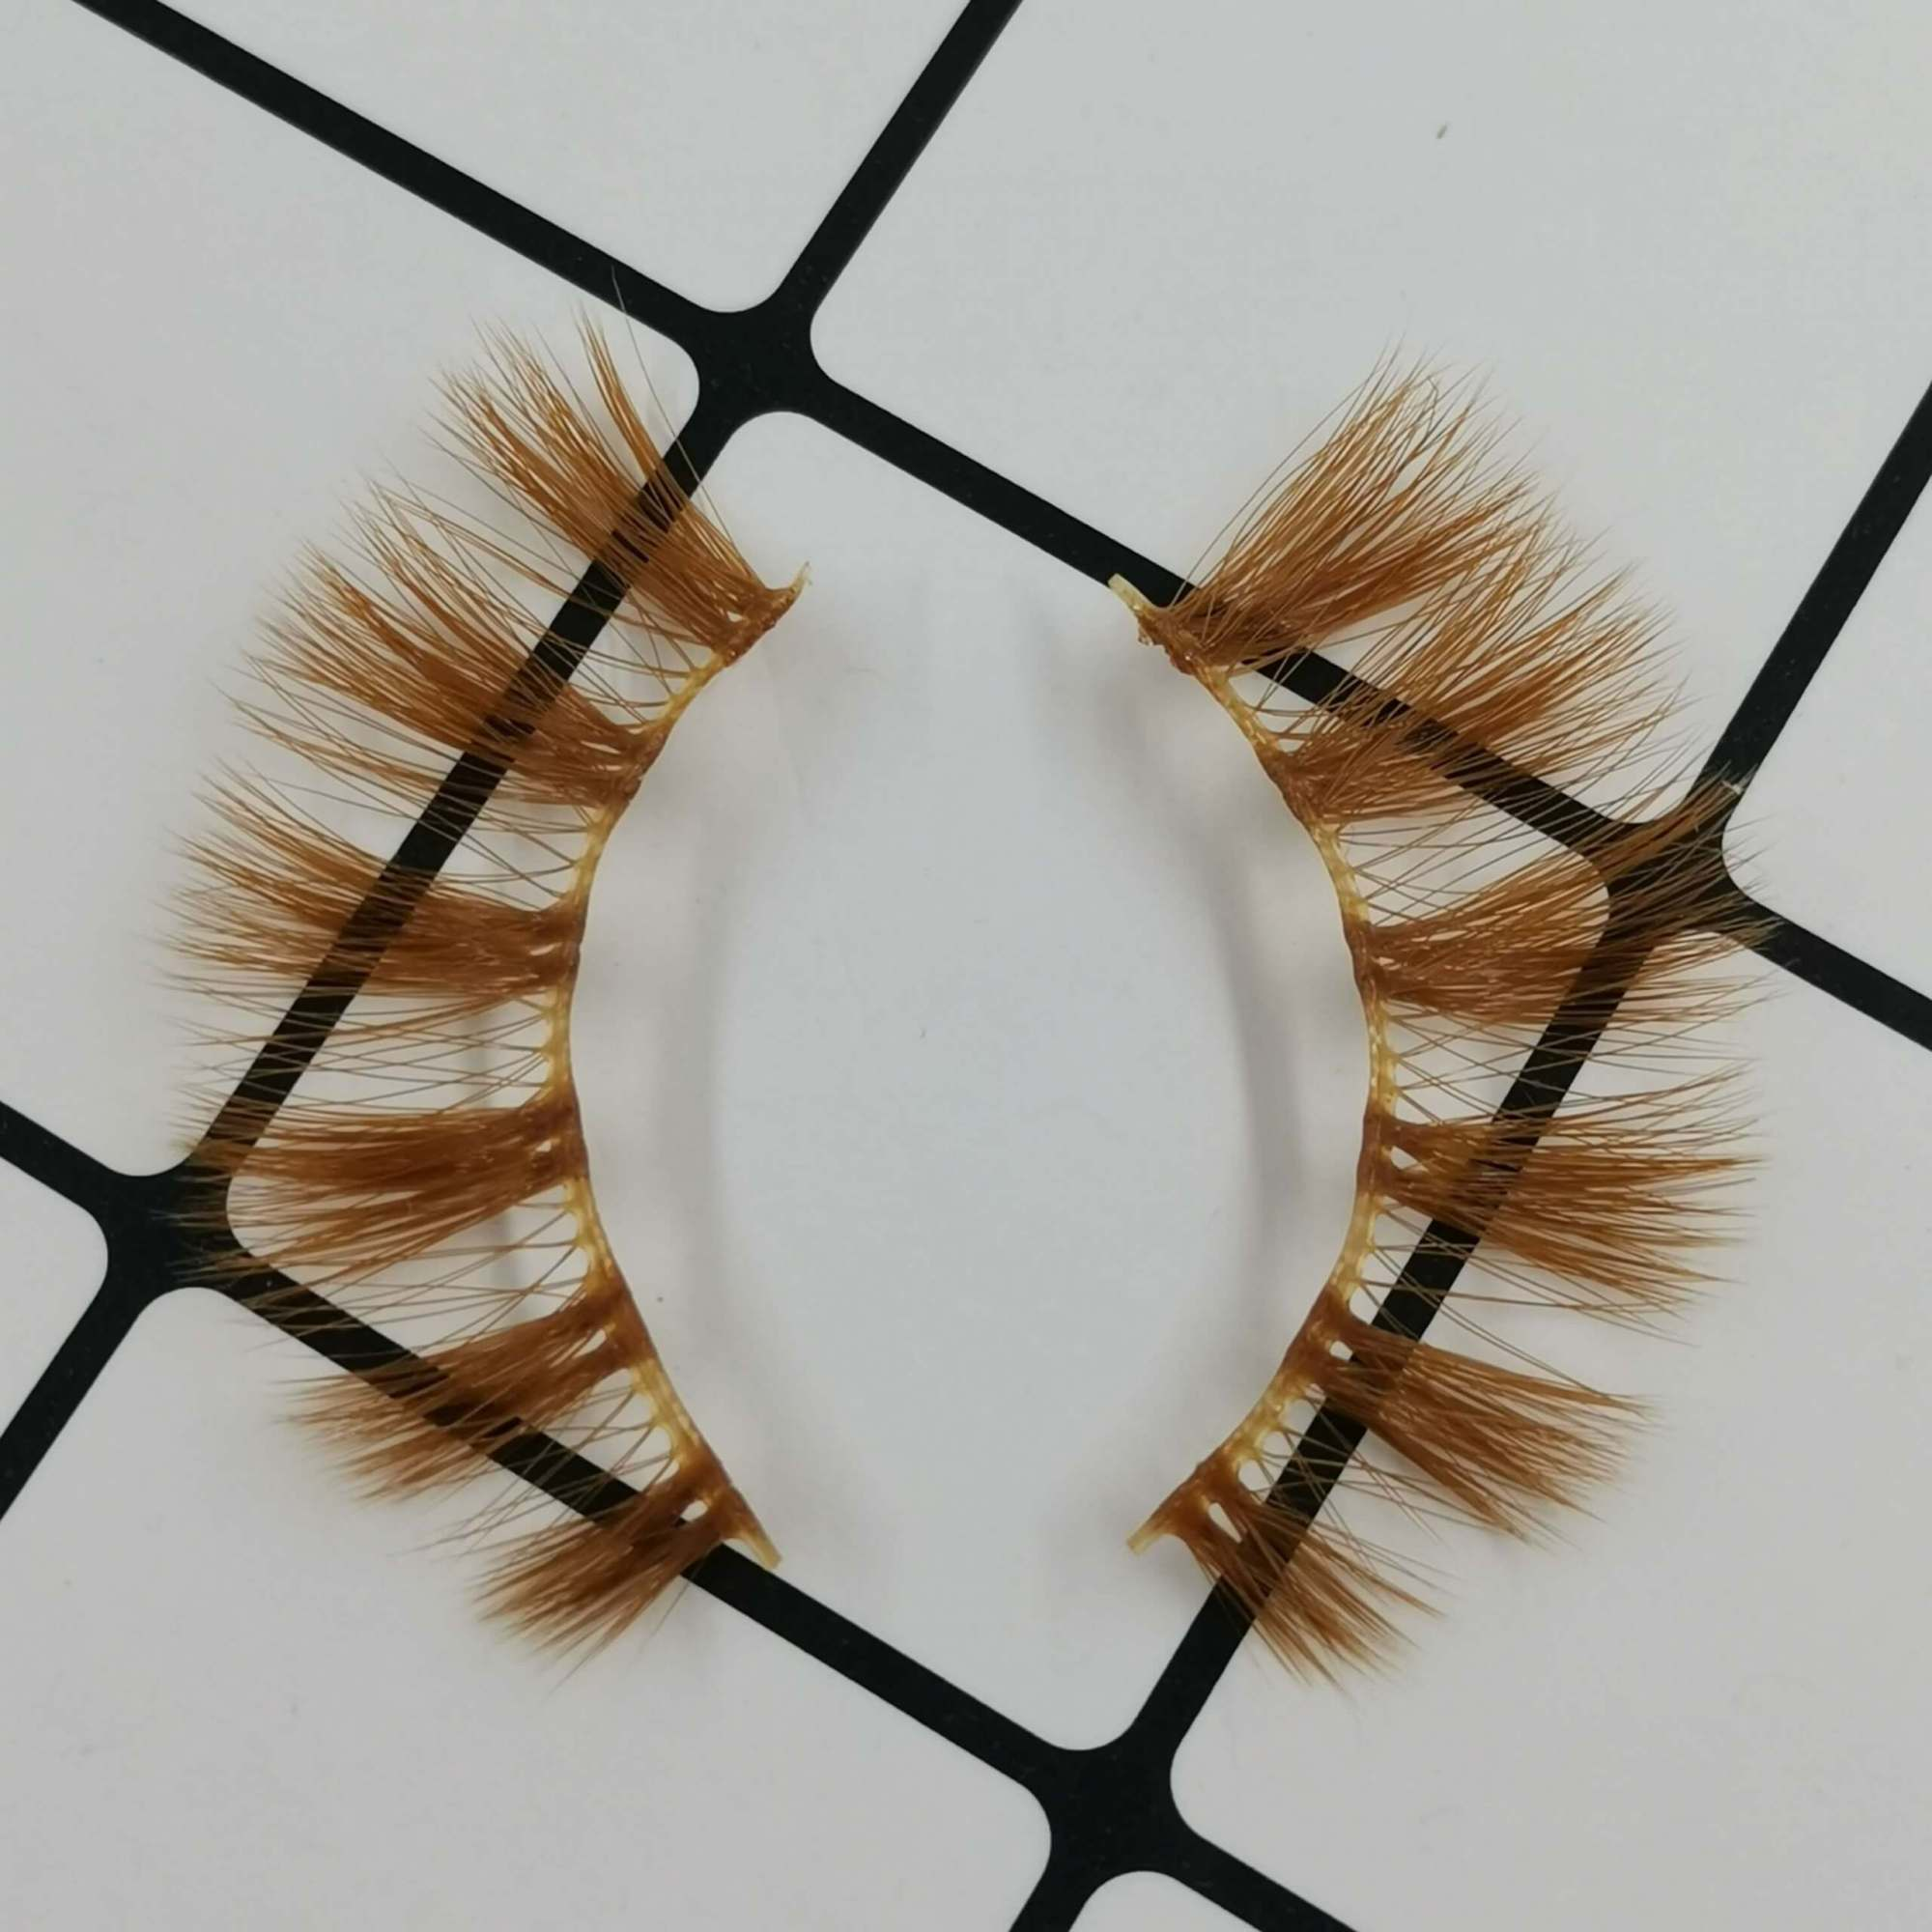 A pair of colored eyelashes for your eye shape and its color is brown. Trust me, ProluxuryLashes brand is the best eyelash supplier